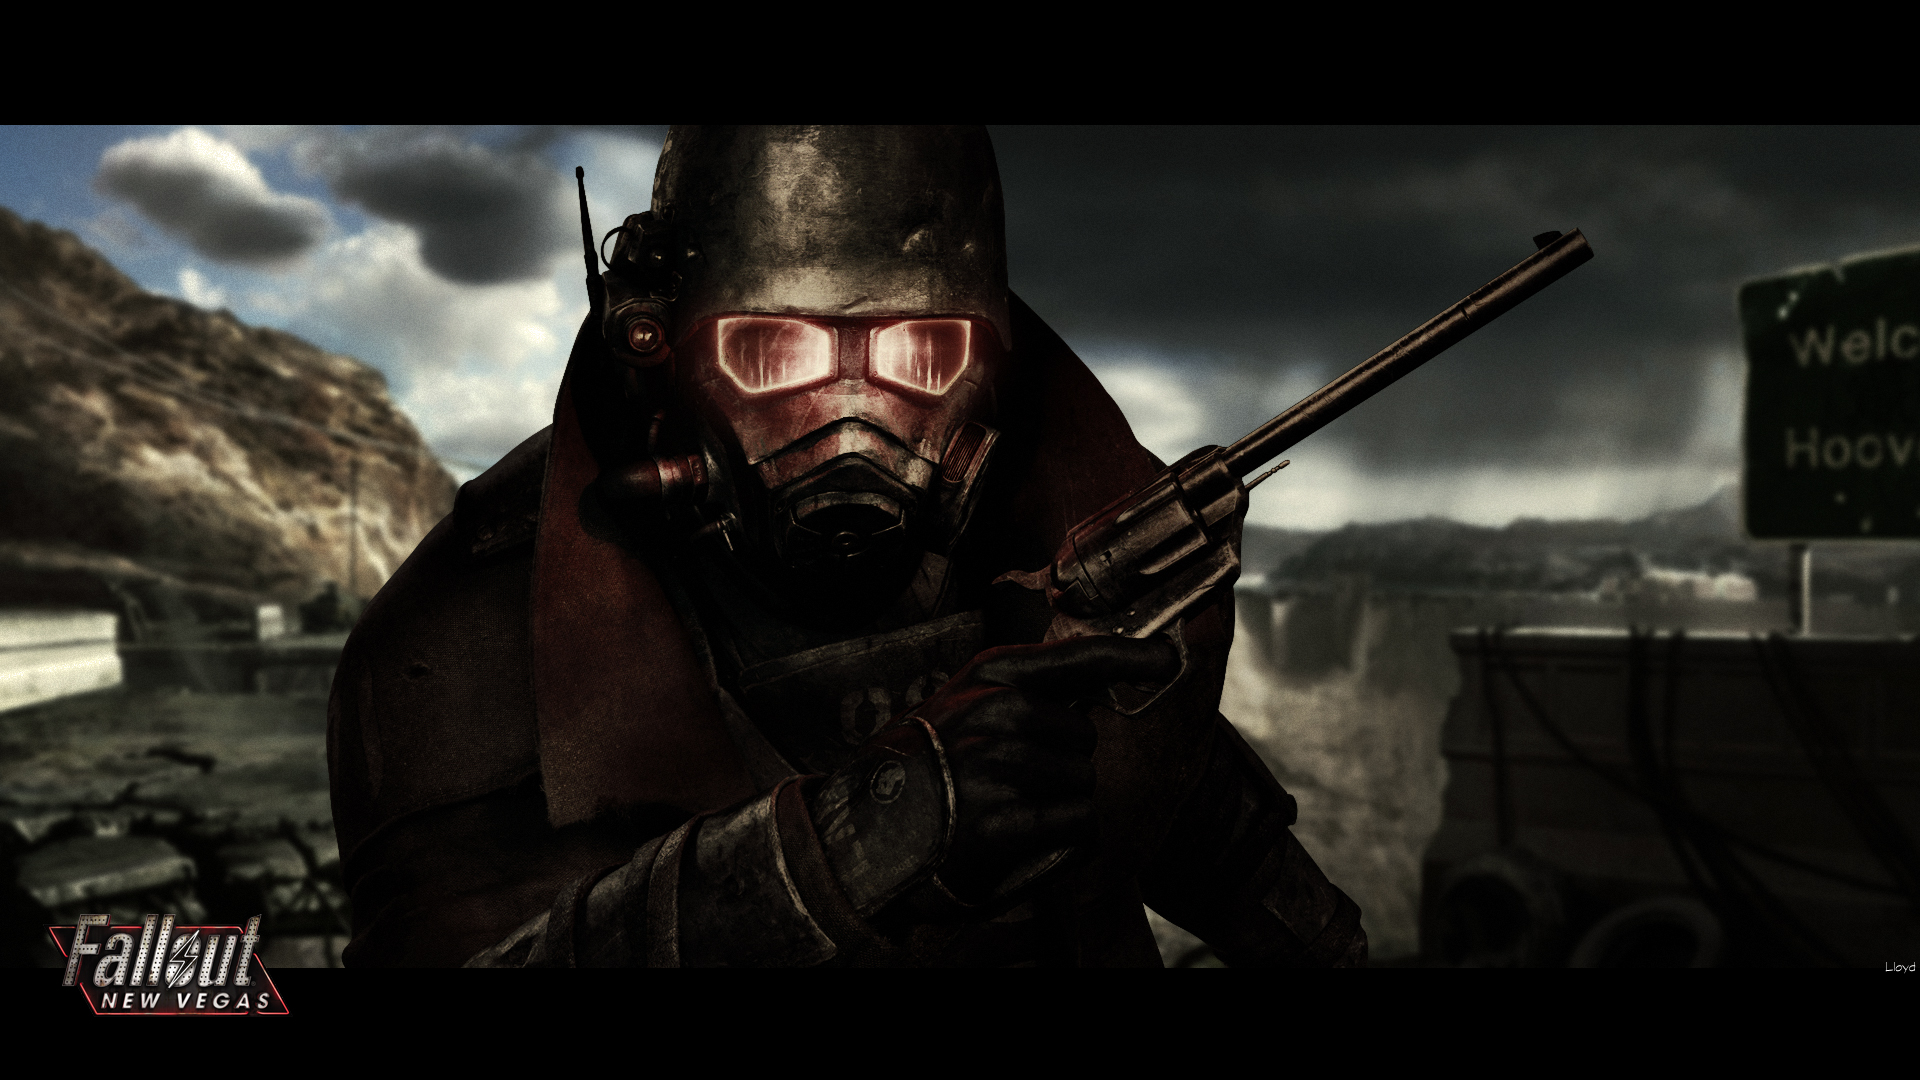 Fallout New Vegas Wallpaper By Igotgame1075 On Deviantart